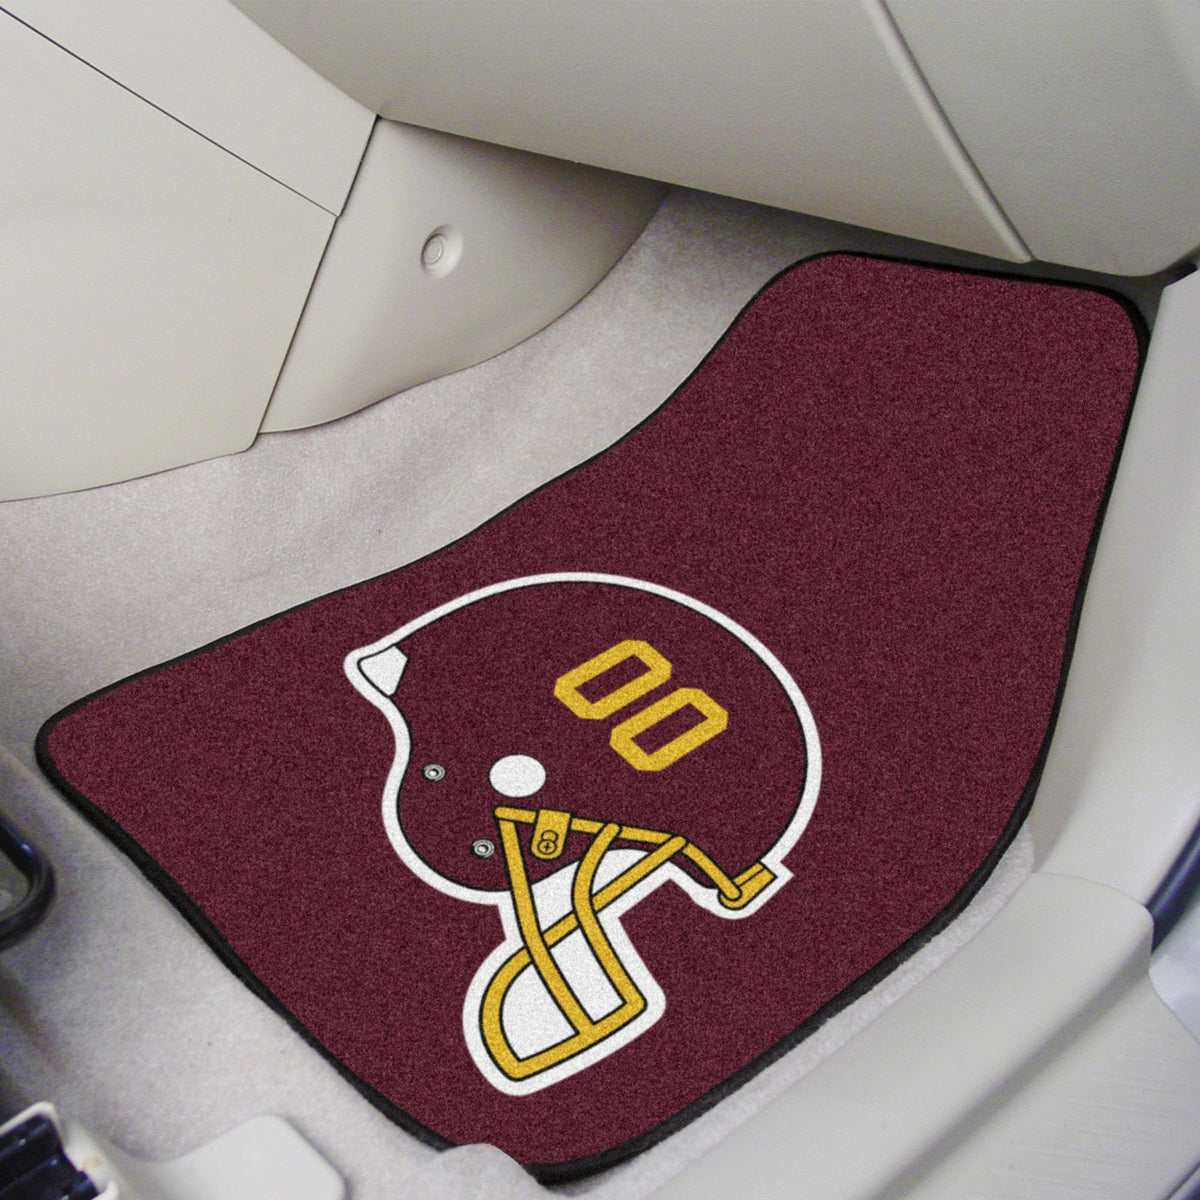 "NFL - 2-pc Carpet Car Mat Set, 17"" x 27"" NFL Mats, Front Car Mats, 2-pc Carpet Car Mat Set, NFL, Auto Fan Mats Washington Redskins"